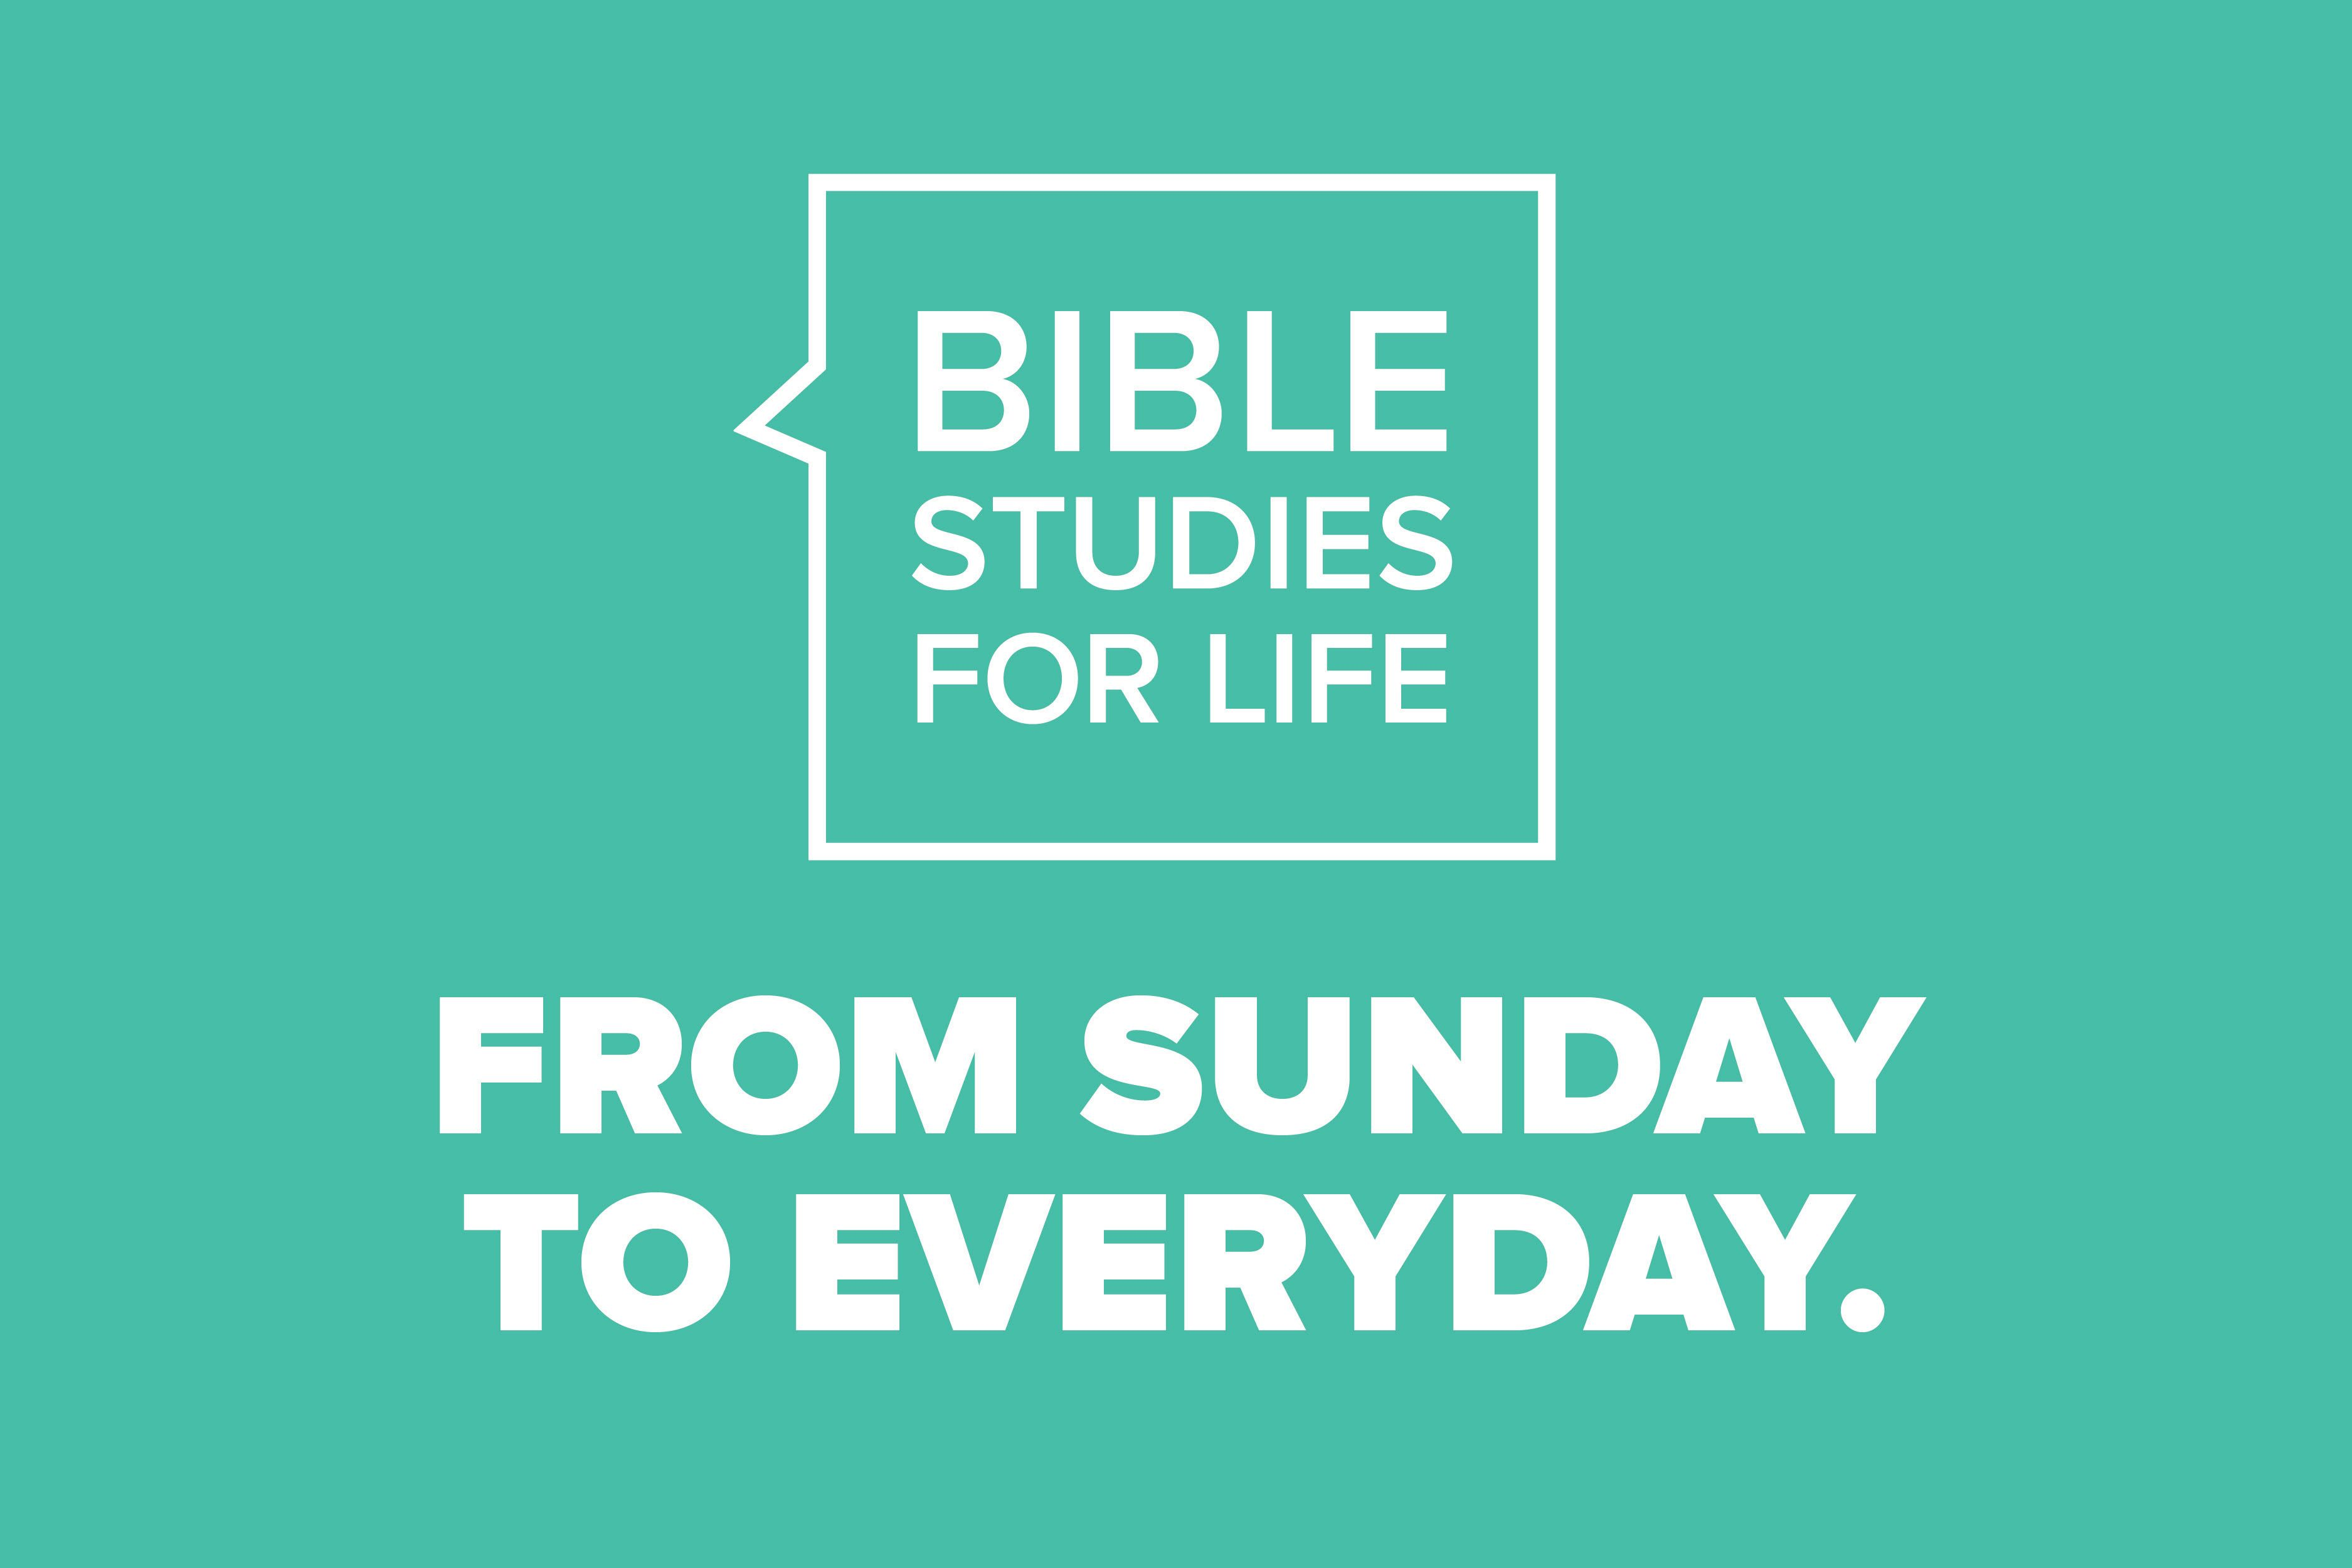 Bible Studies for Life